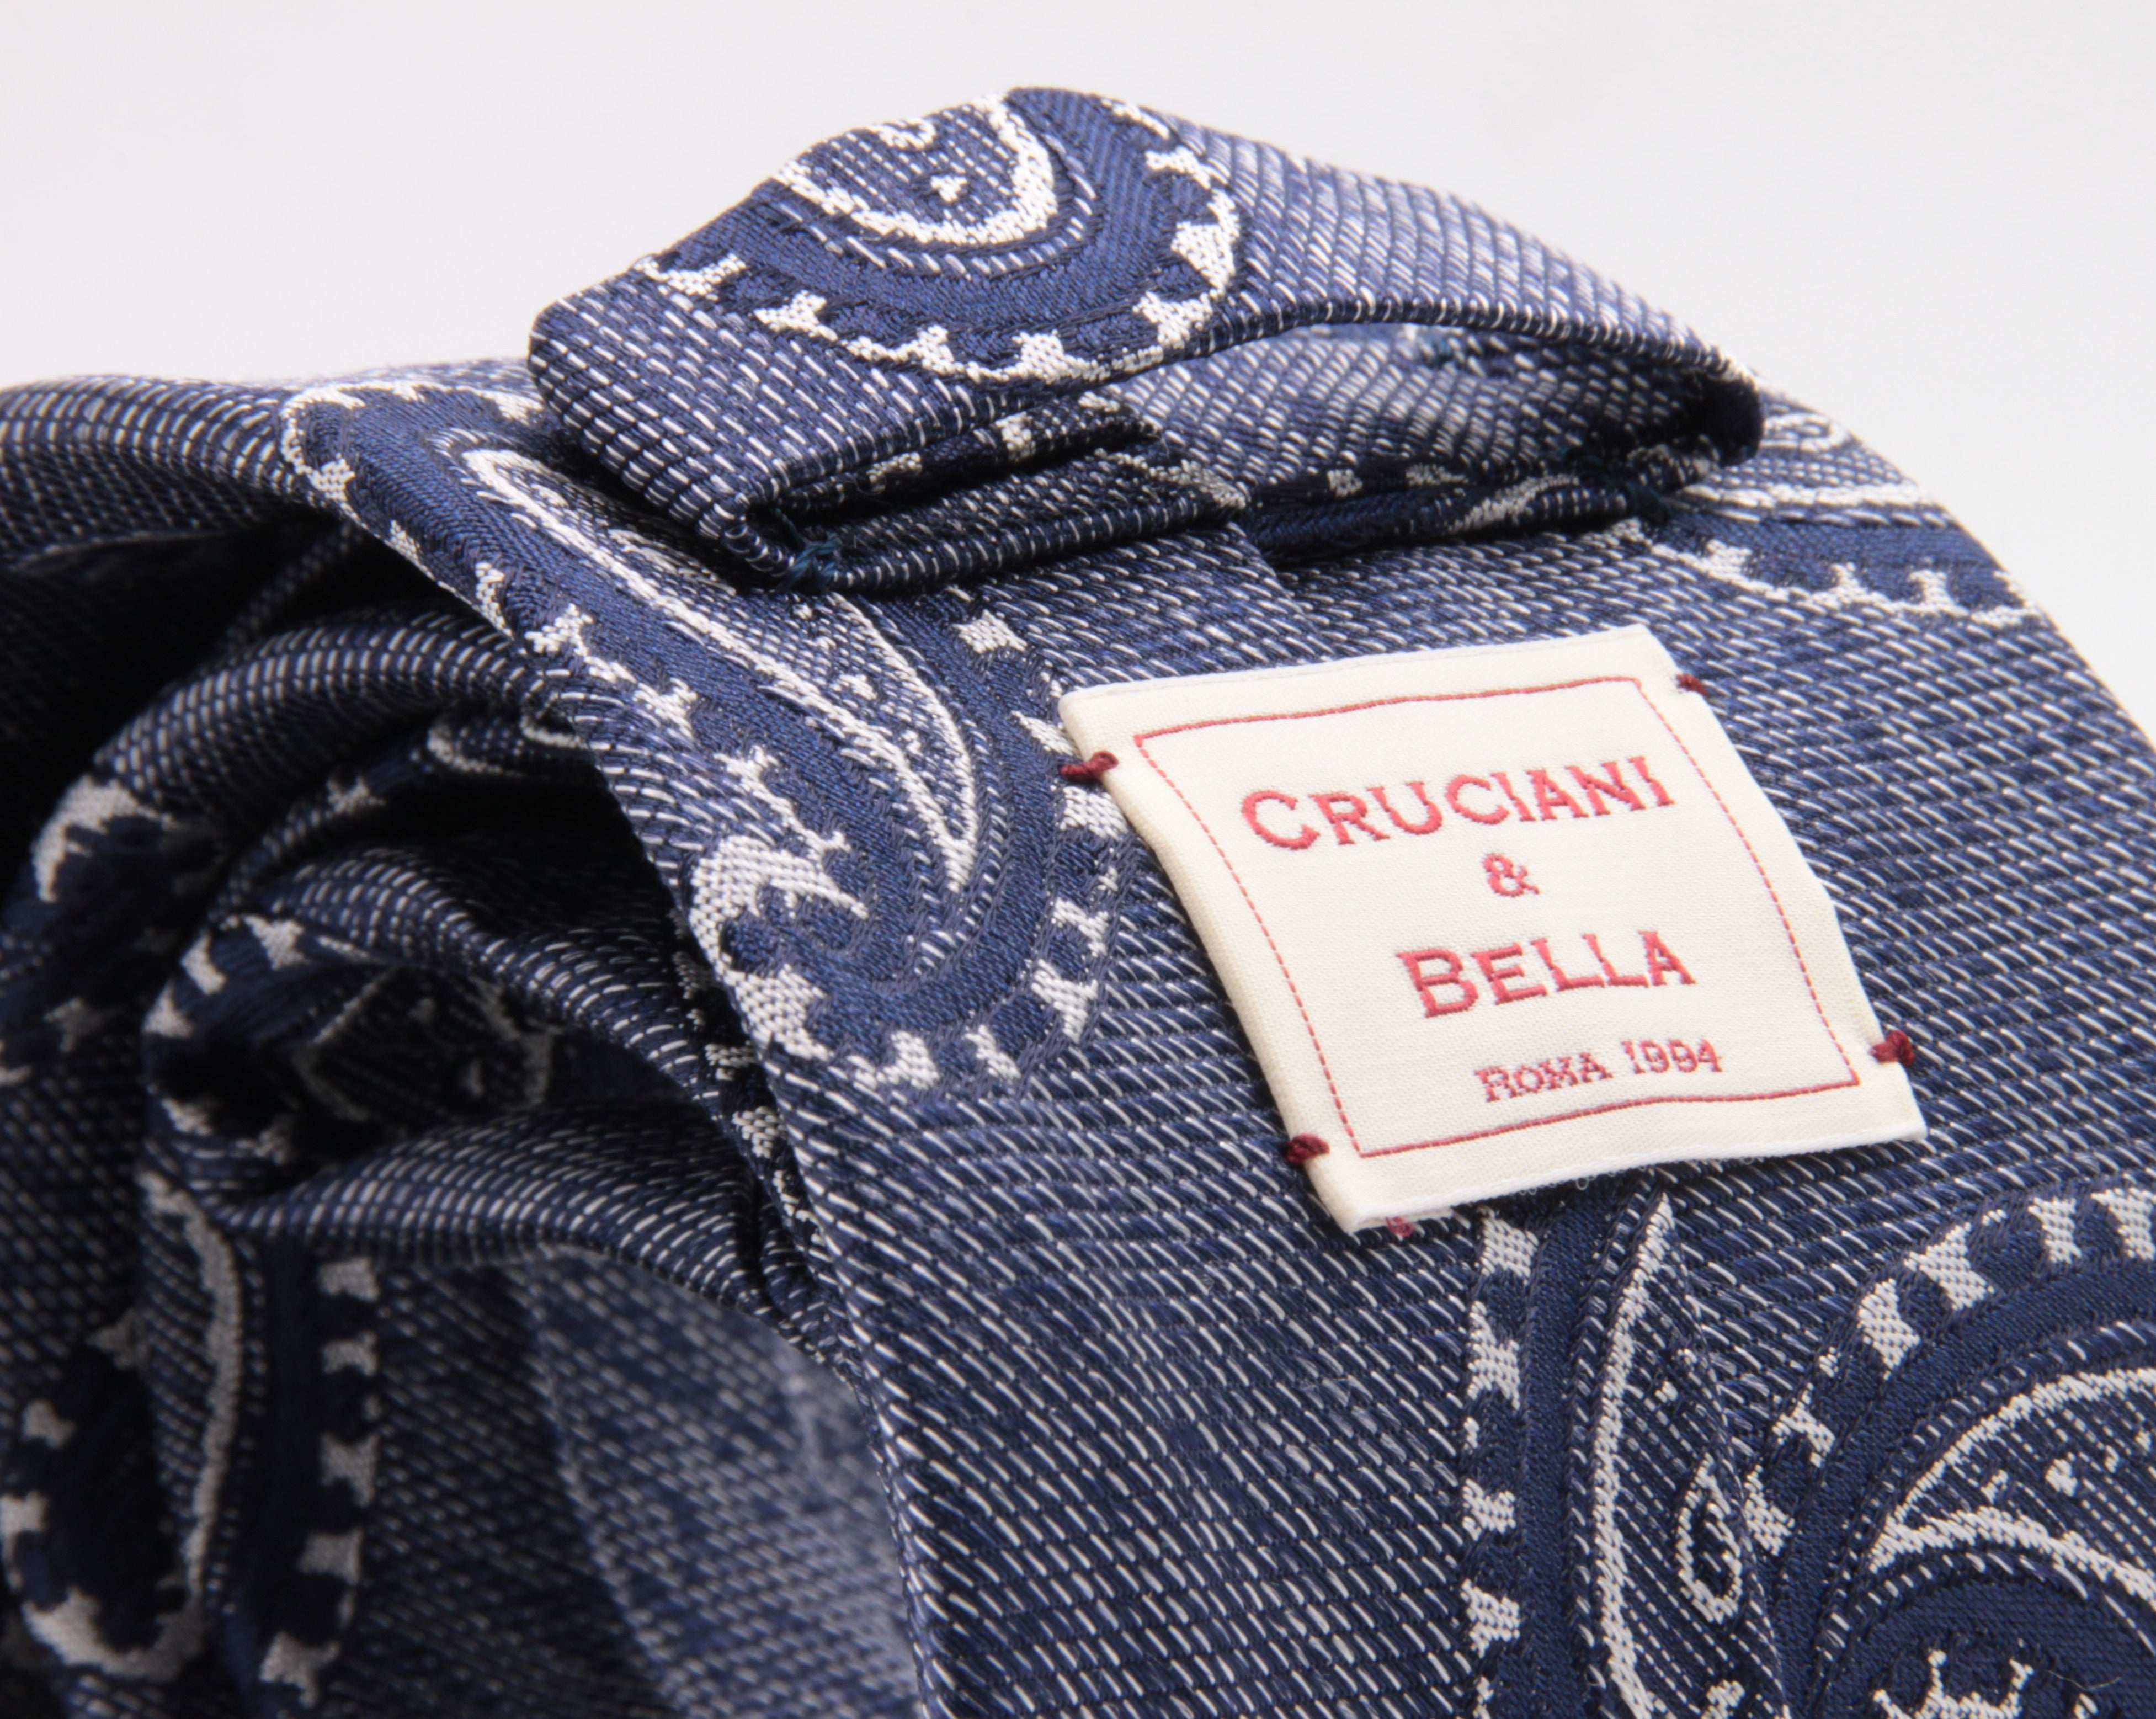 Cruciani & Bella 100% Silk Jacquard  Tipped Blue melange and White Paisley Tie Handmade in Italy 8 cm x 150 cm #4449